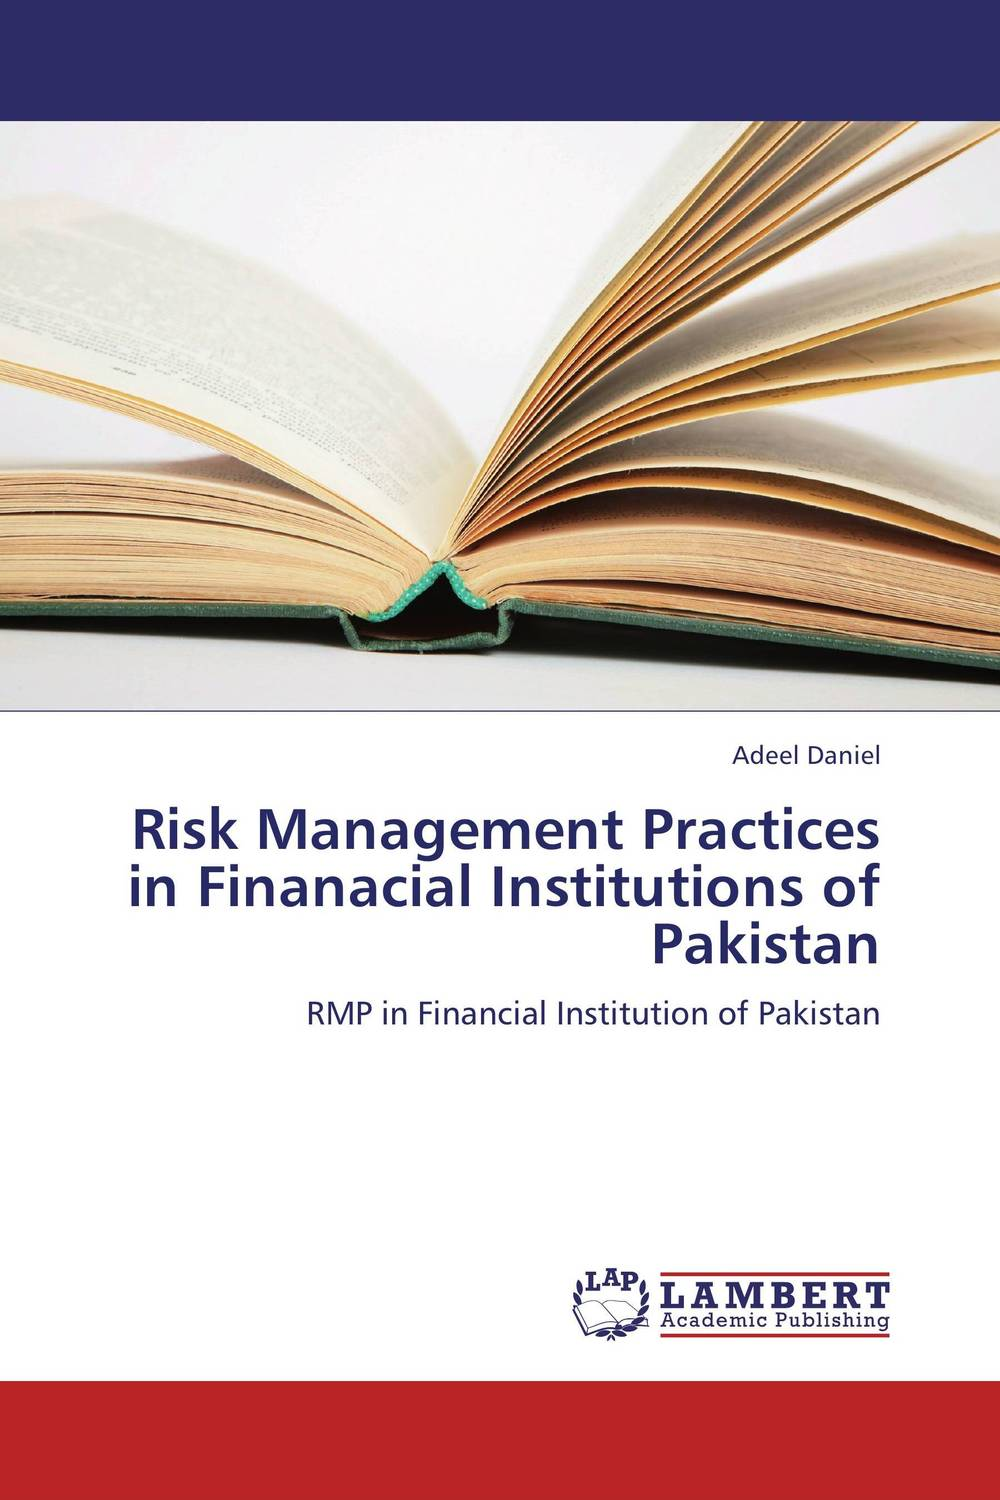 Risk Management Practices in Finanacial Institutions of Pakistan